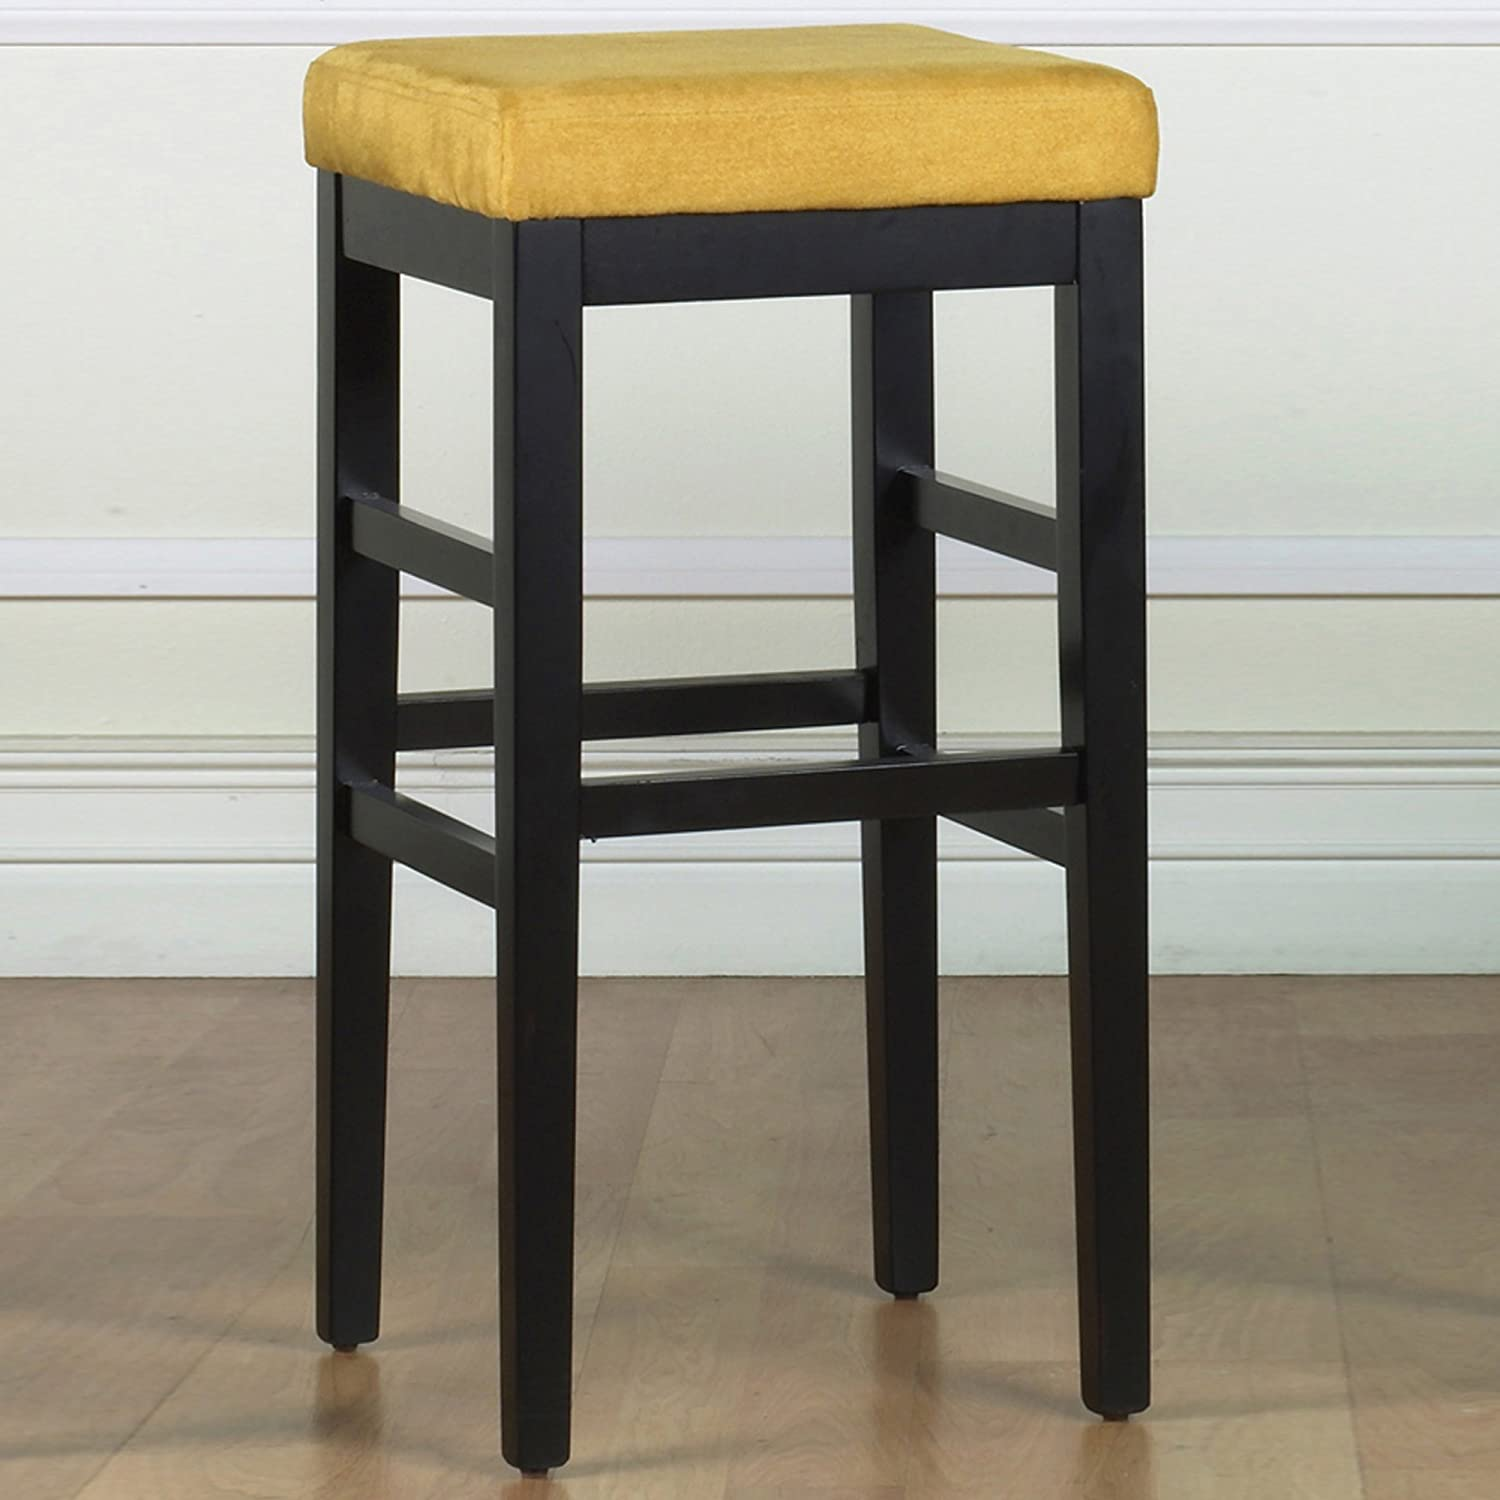 Armen Living Sonata 30-Inch Stationary Barstool Yellow Micro Fiber with Black Legs